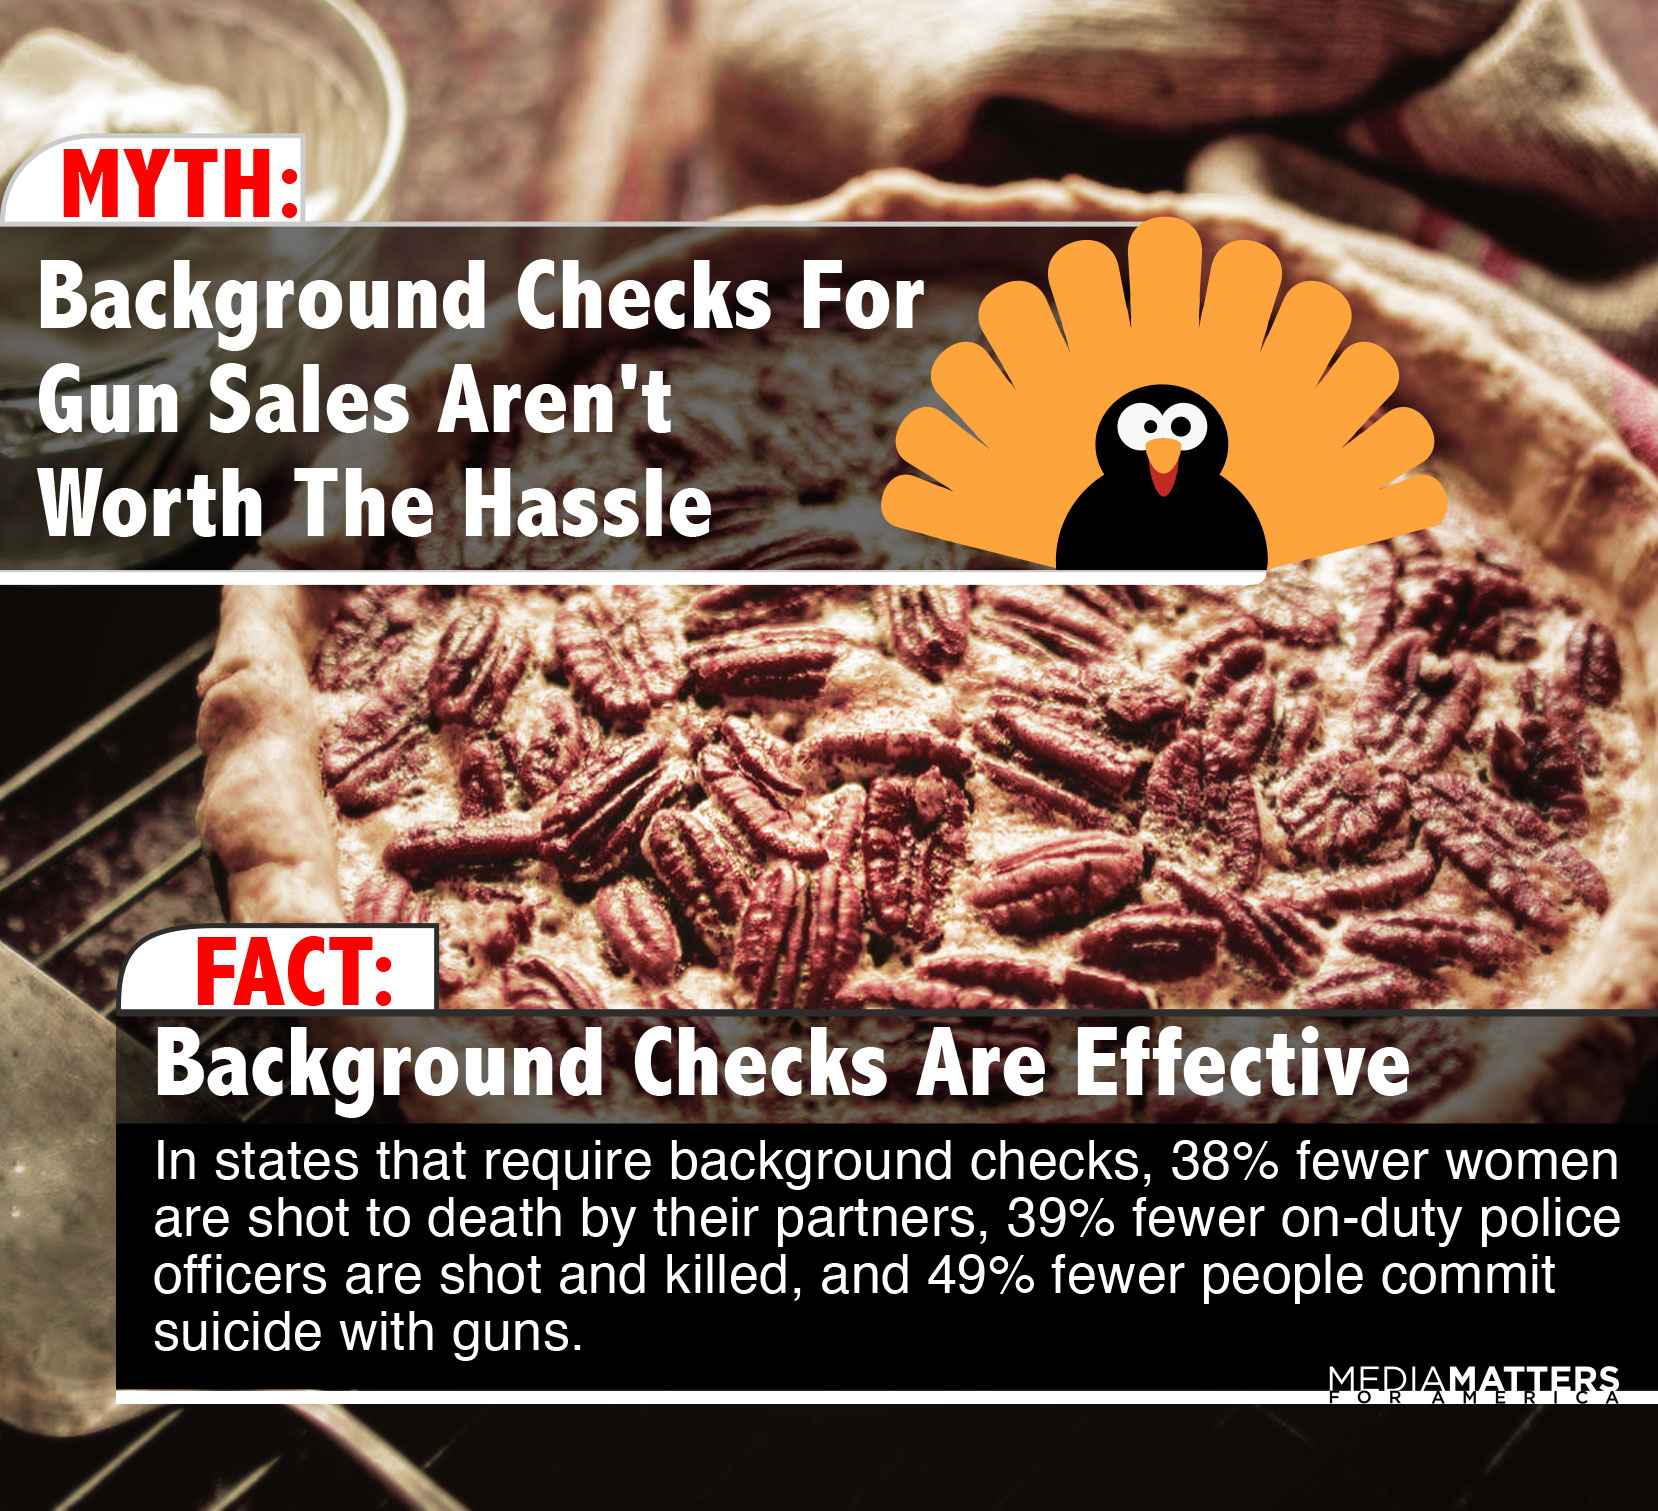 Background Checks Myths and Facts